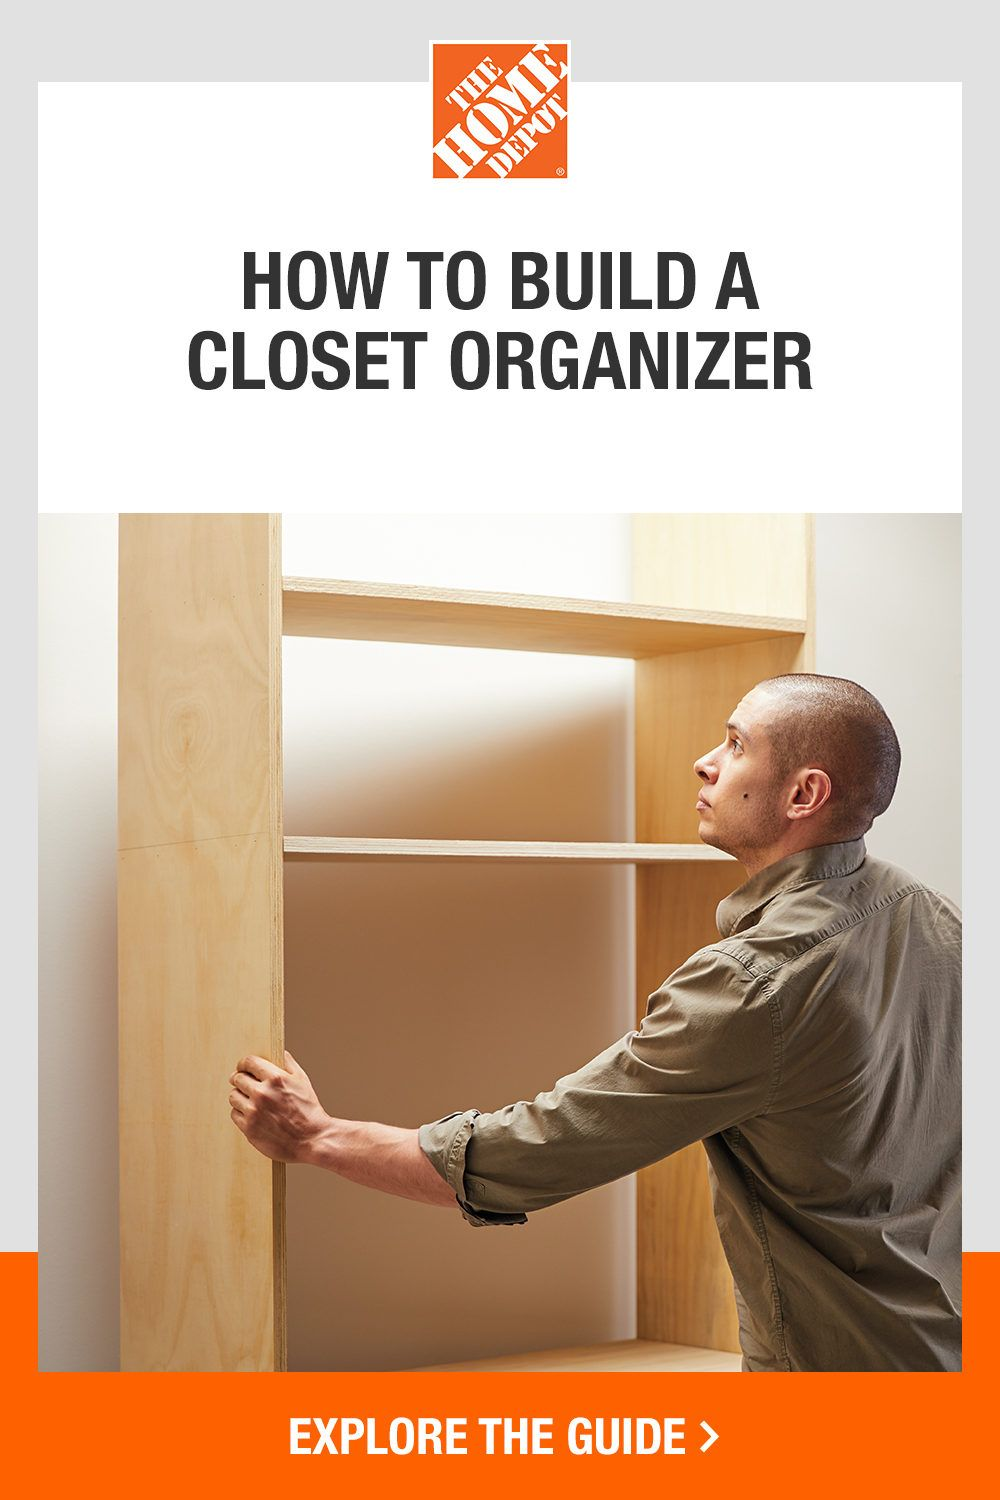 Revolutionize your closet with a DIY organizer. The Home Depot guide will give you inspiration and step-by-step instructions on how to keep your spaces neat and tidy. Click now to maximize your storage with this DIY closet system.